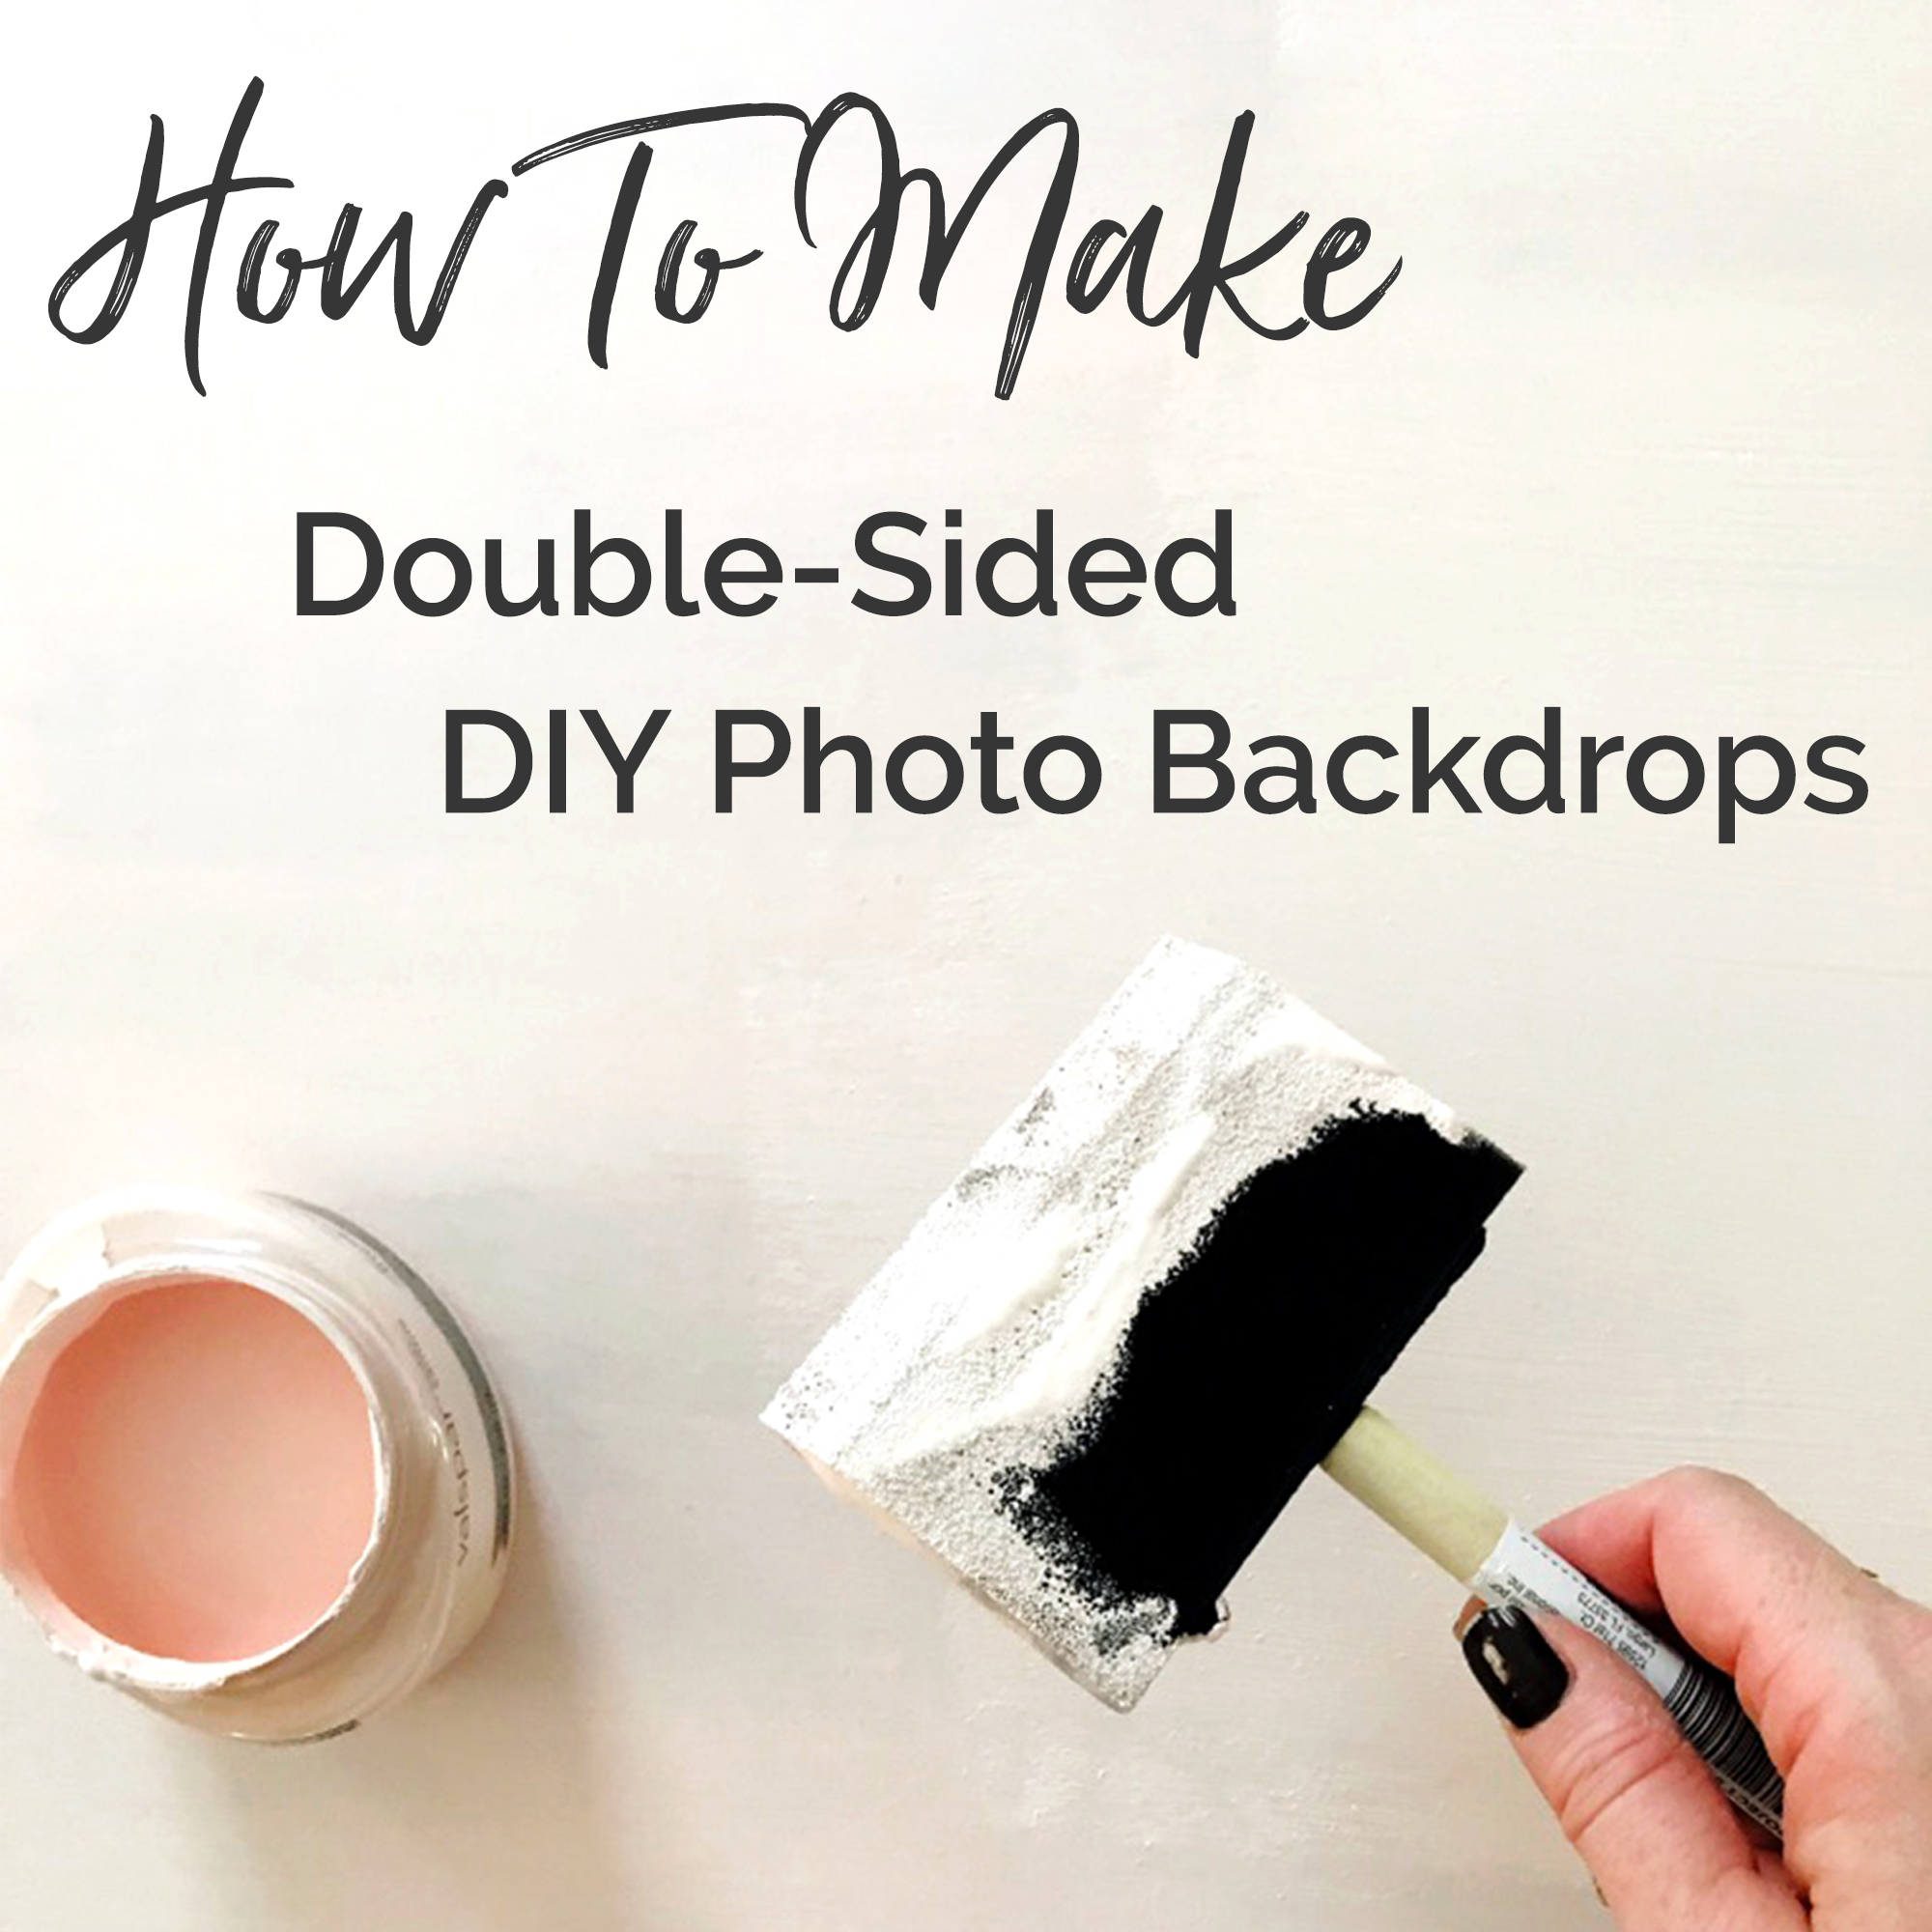 How to make double-sided, DIY photobackdrops for your artwork, crafts, and other products! Create three different backdrops in white marble, pink, and pine wood for less than $27! For more info, check out danielleandco.com.